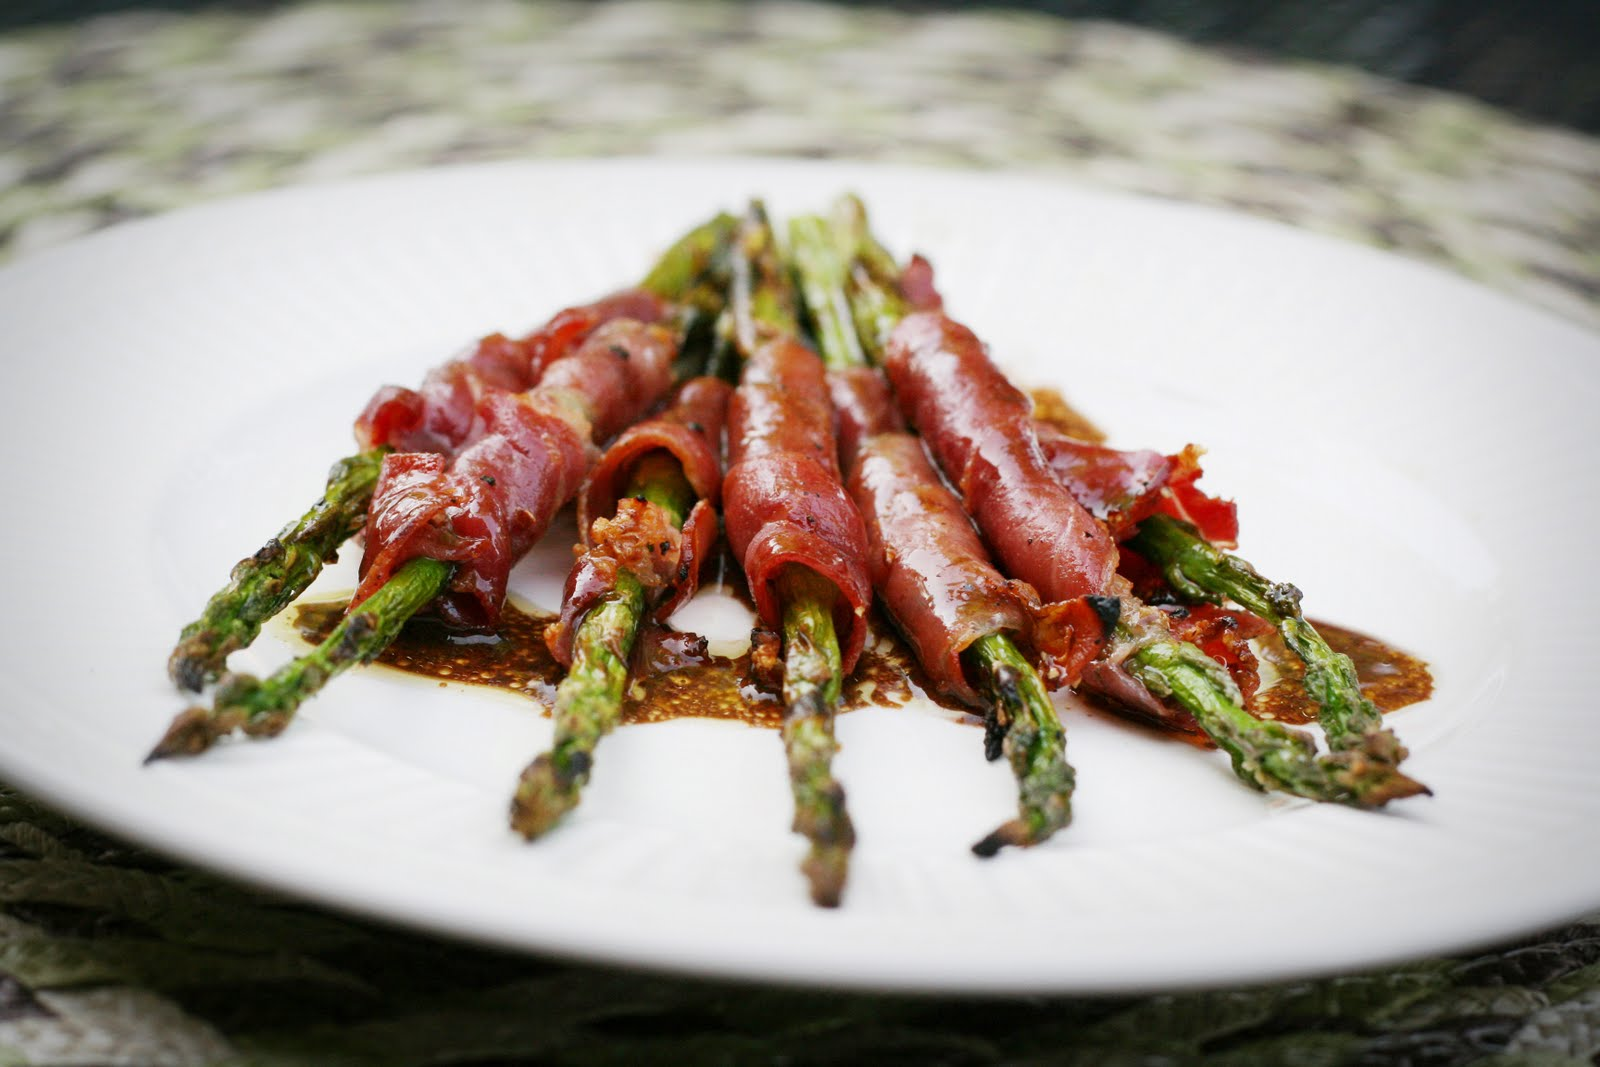 Mary, Quite Culinary: Grilled Prosciutto Wrapped Asparagus